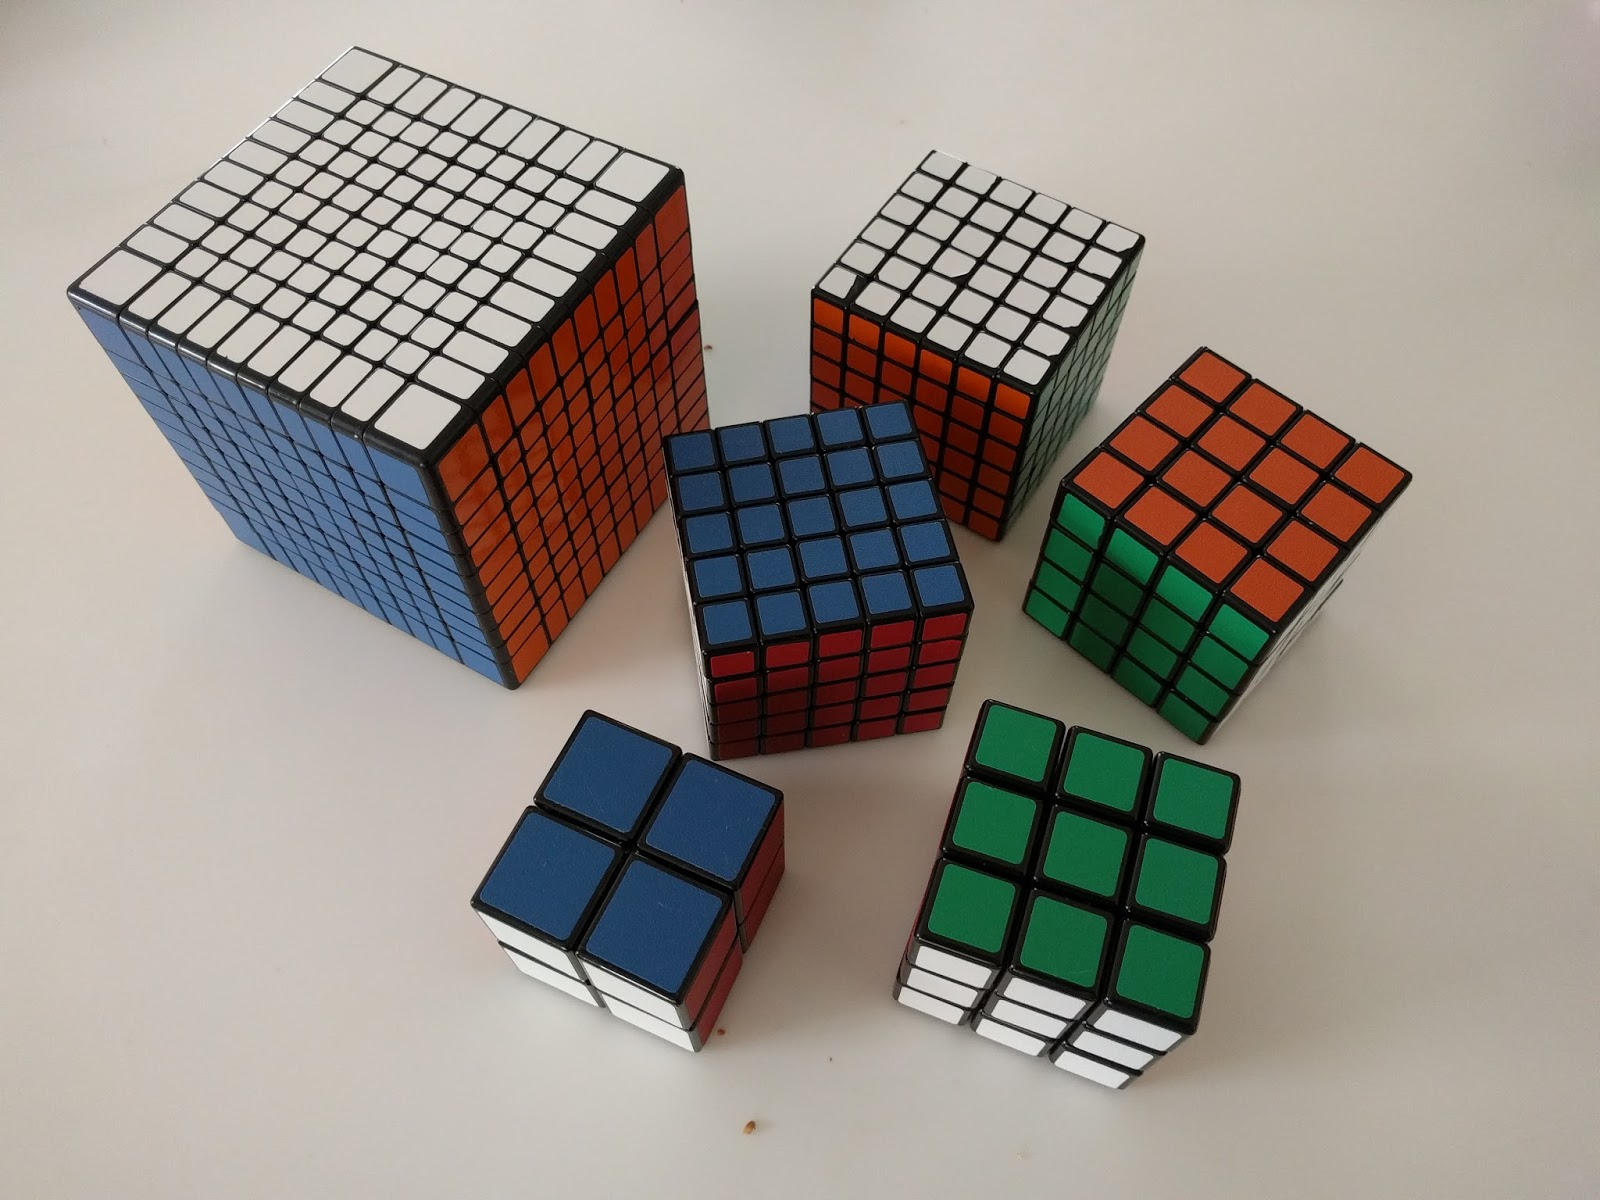 hight resolution of now before you go jumping head first you really need to practice with some smaller cubes first you look in that photo above and you ve got everything from